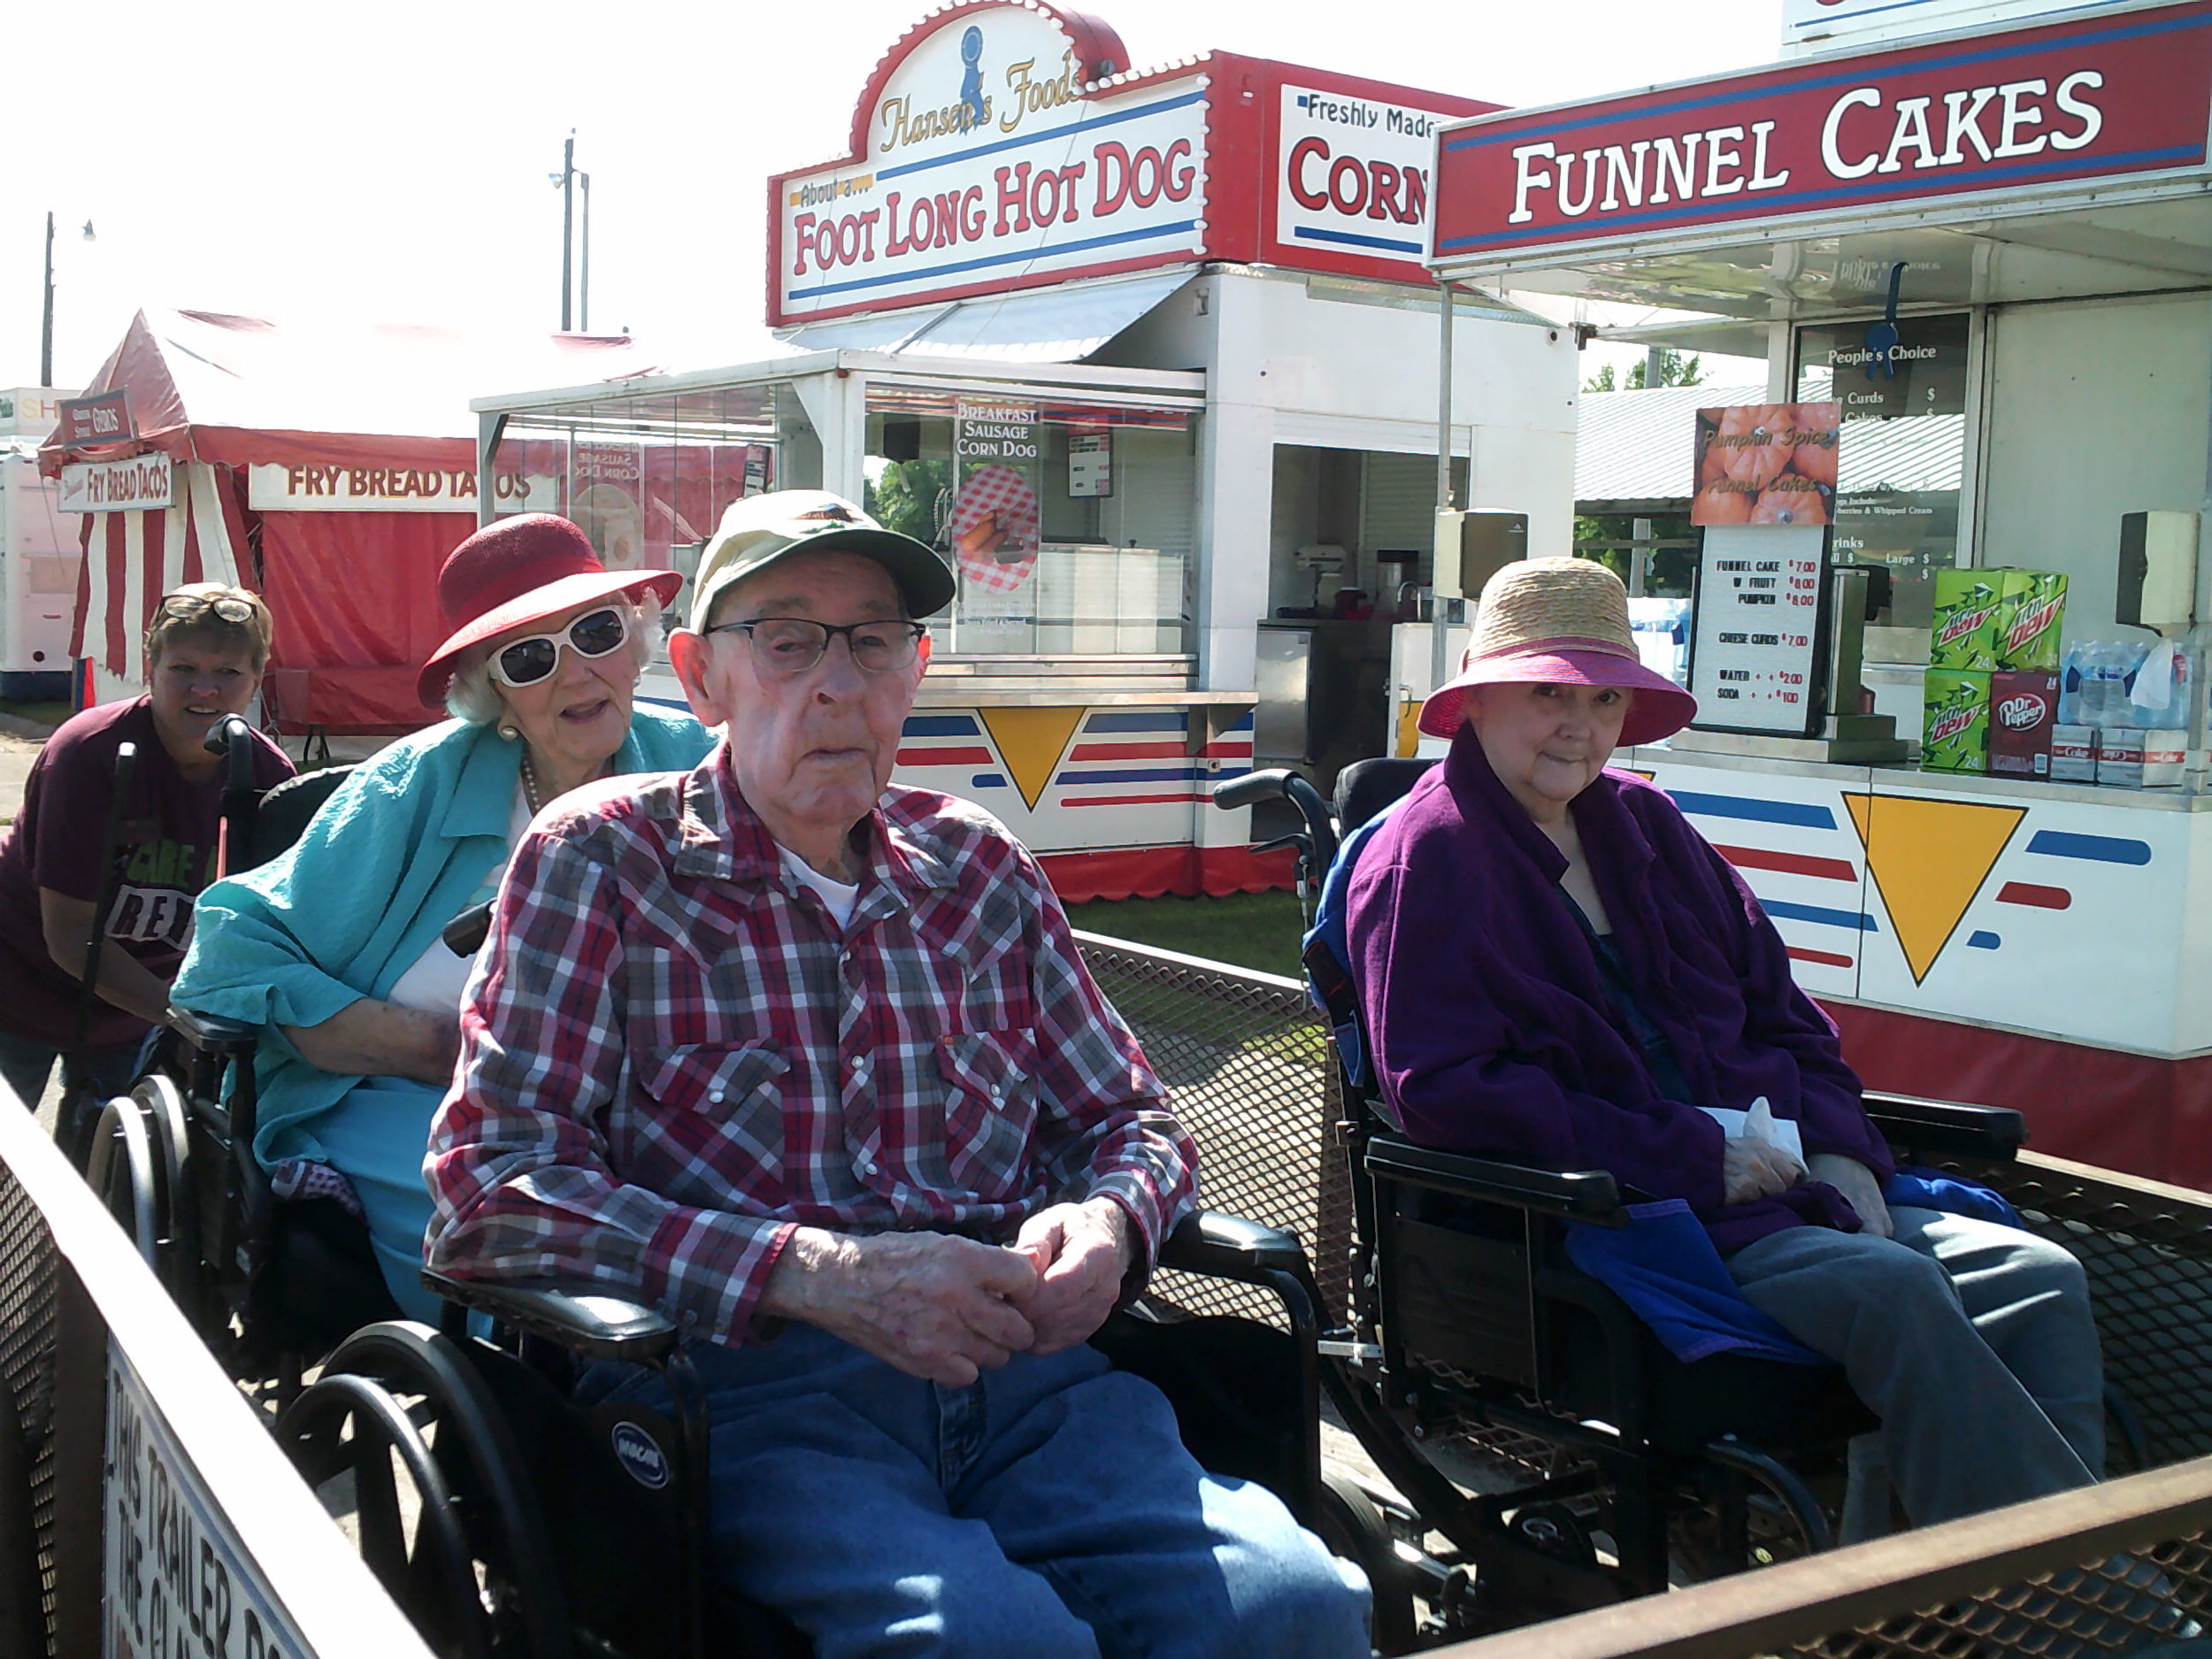 Valley Care and Rehab residents were given the VIP treatment with a private tour of the fairgrounds.